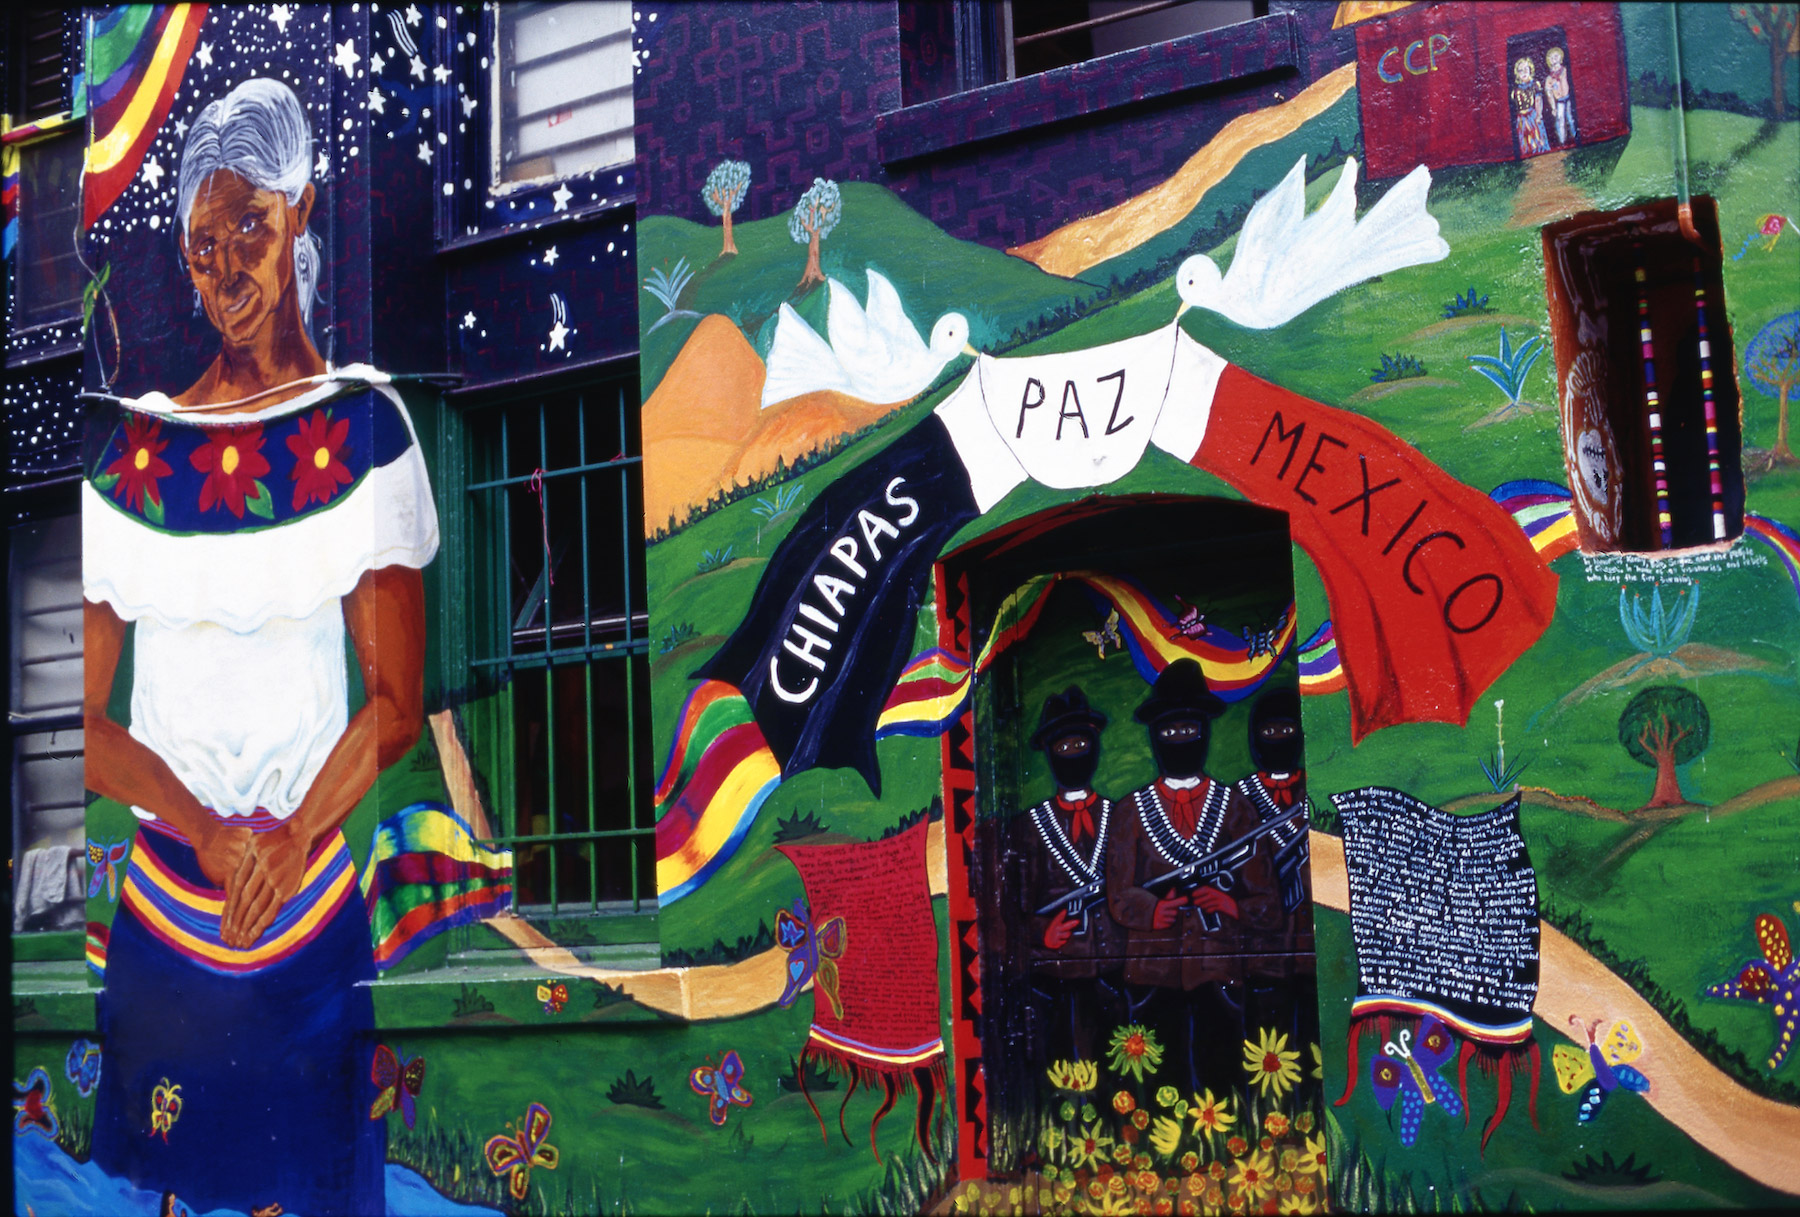 Section of mural that depicts Zapatista fighters and a smiling Indigenous Mexican woman